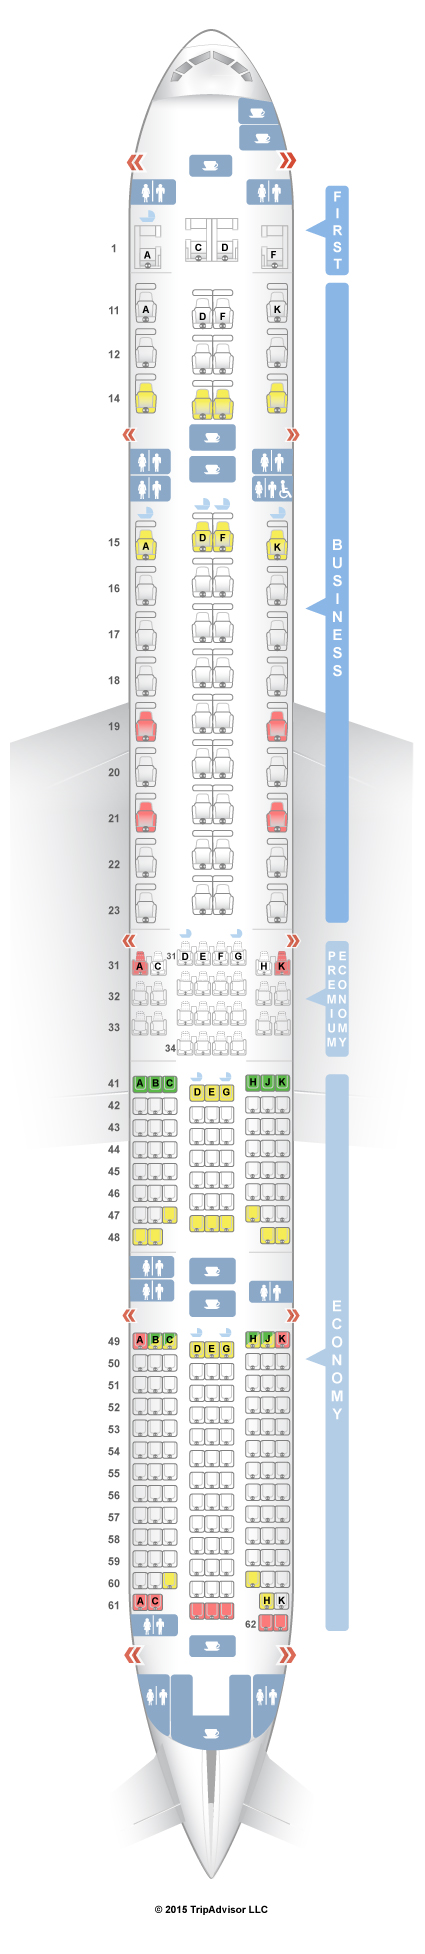 SeatGuru Seat Map Singapore Airlines Boeing 777-300ER (77W) Four Class